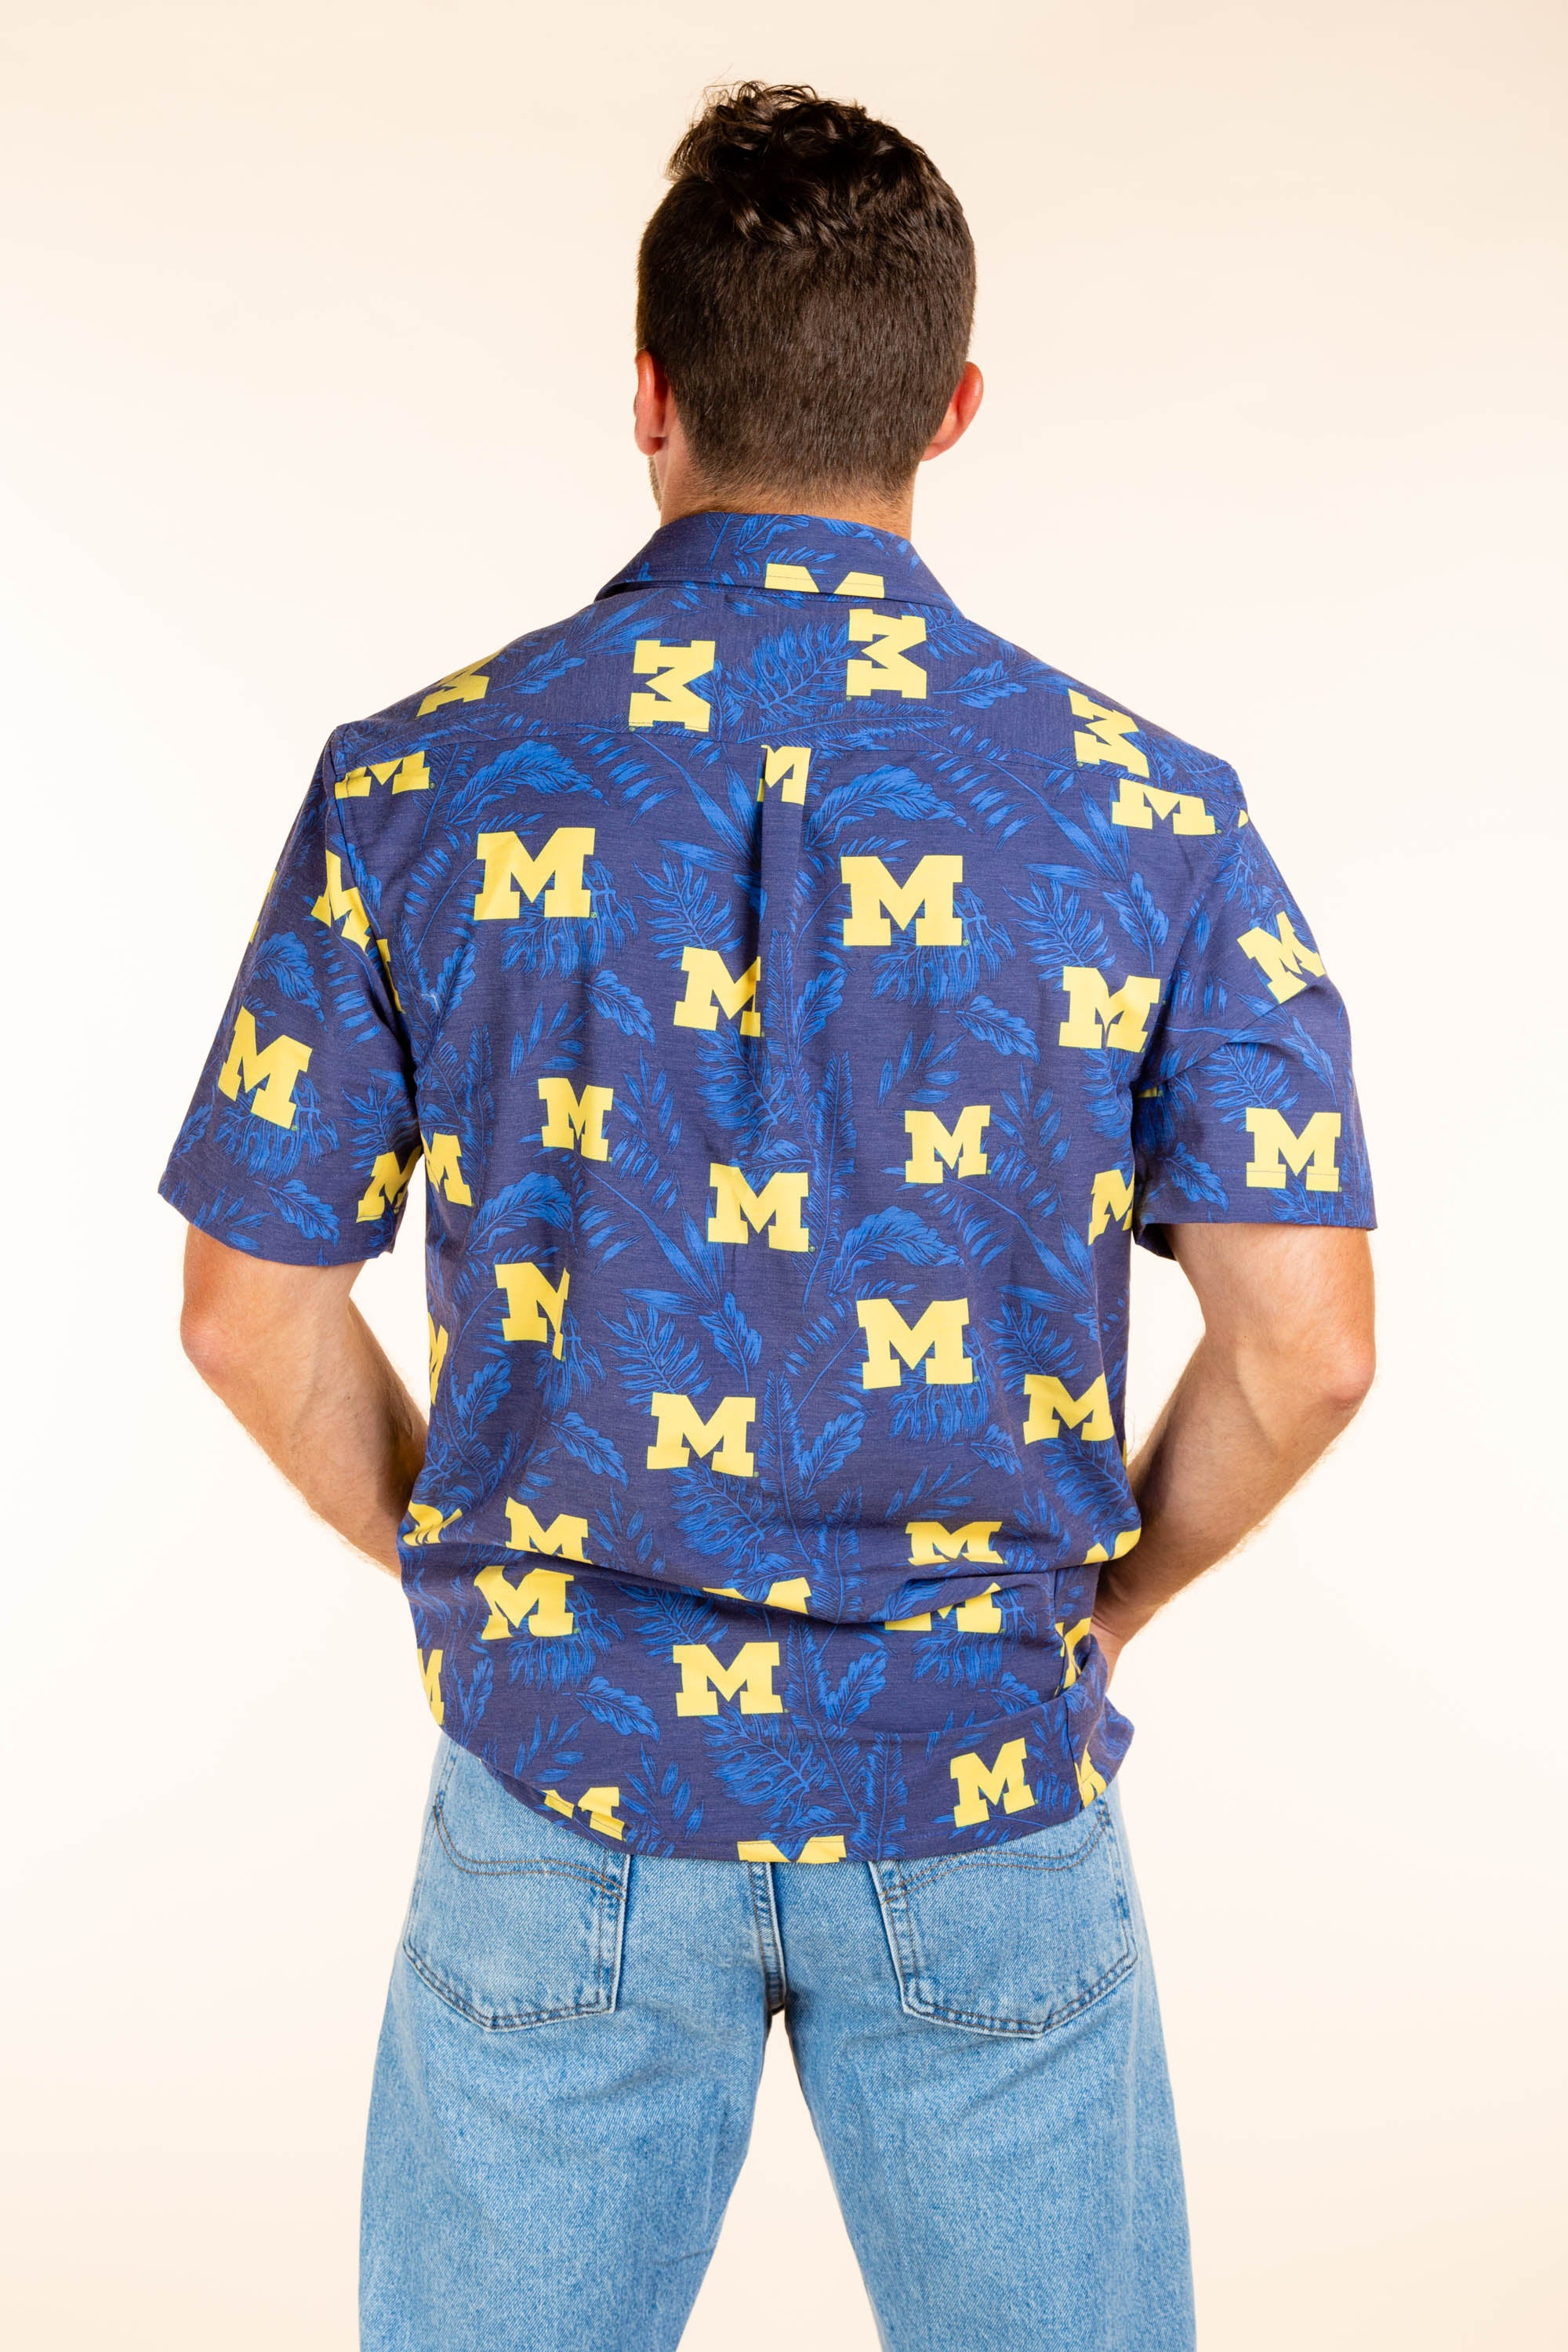 University of Michigan Button Up Tailgating Shirt